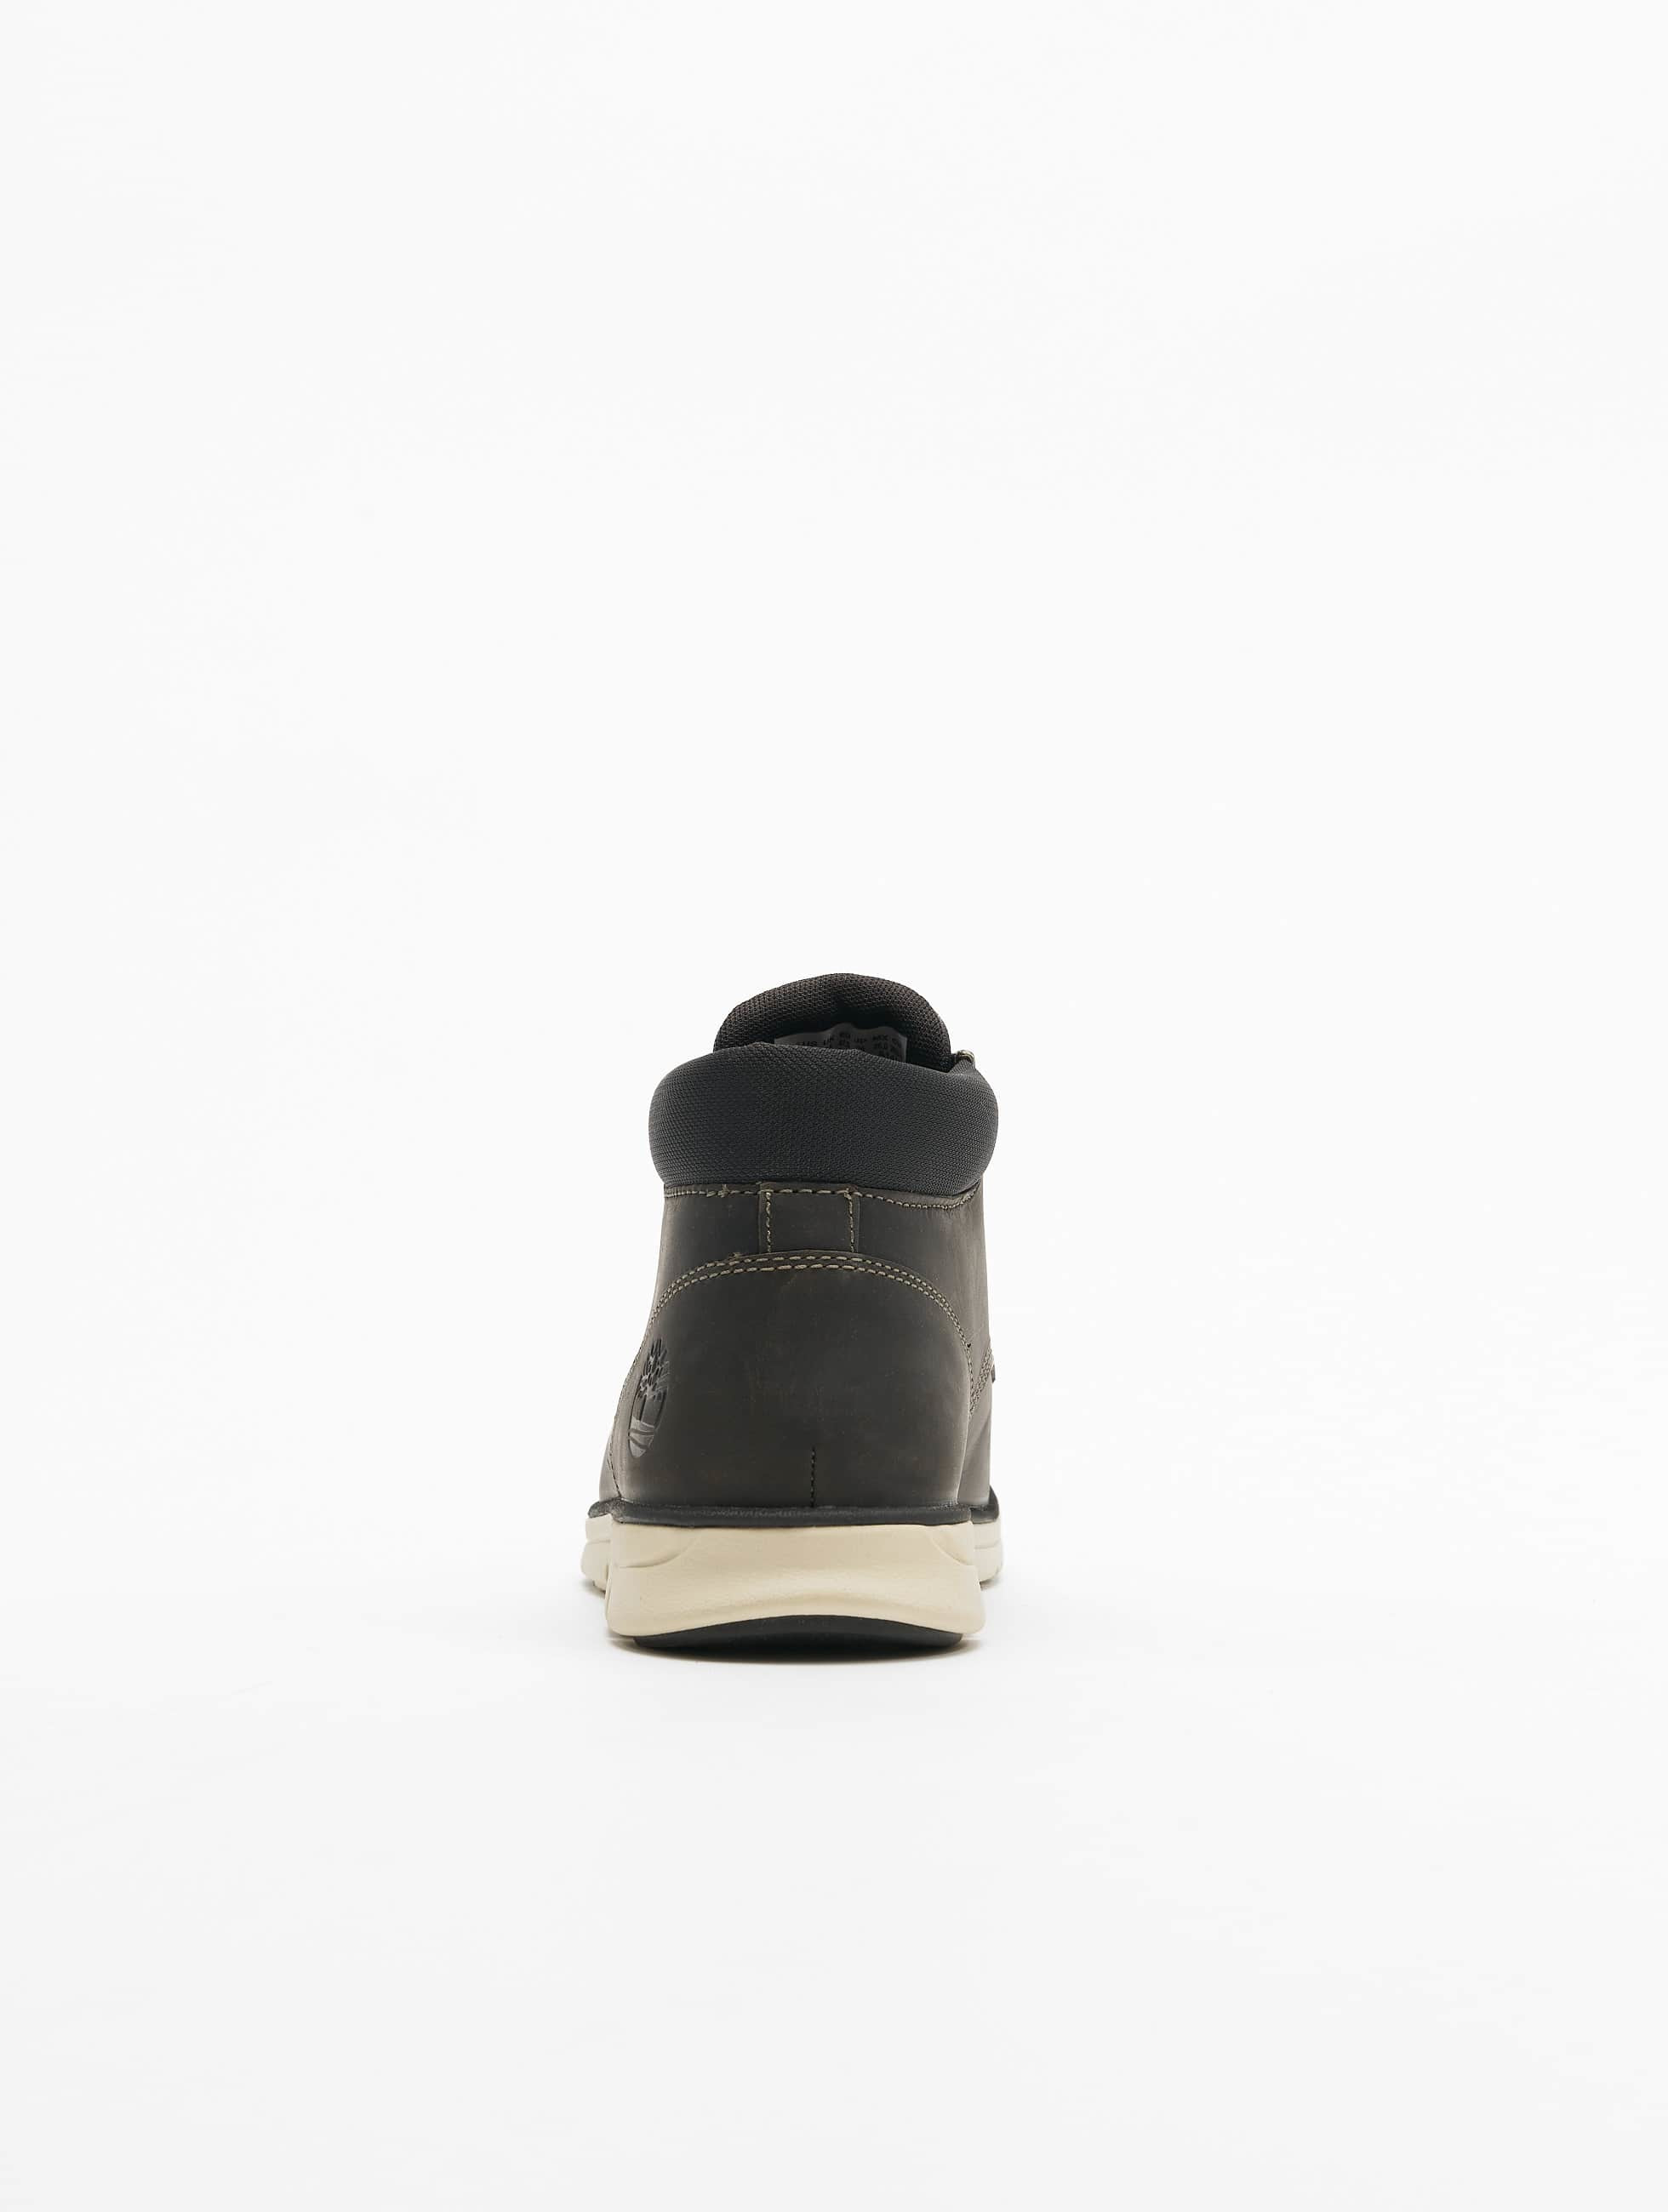 Timberland Sneakers Bradstreet Chukka Leather gray